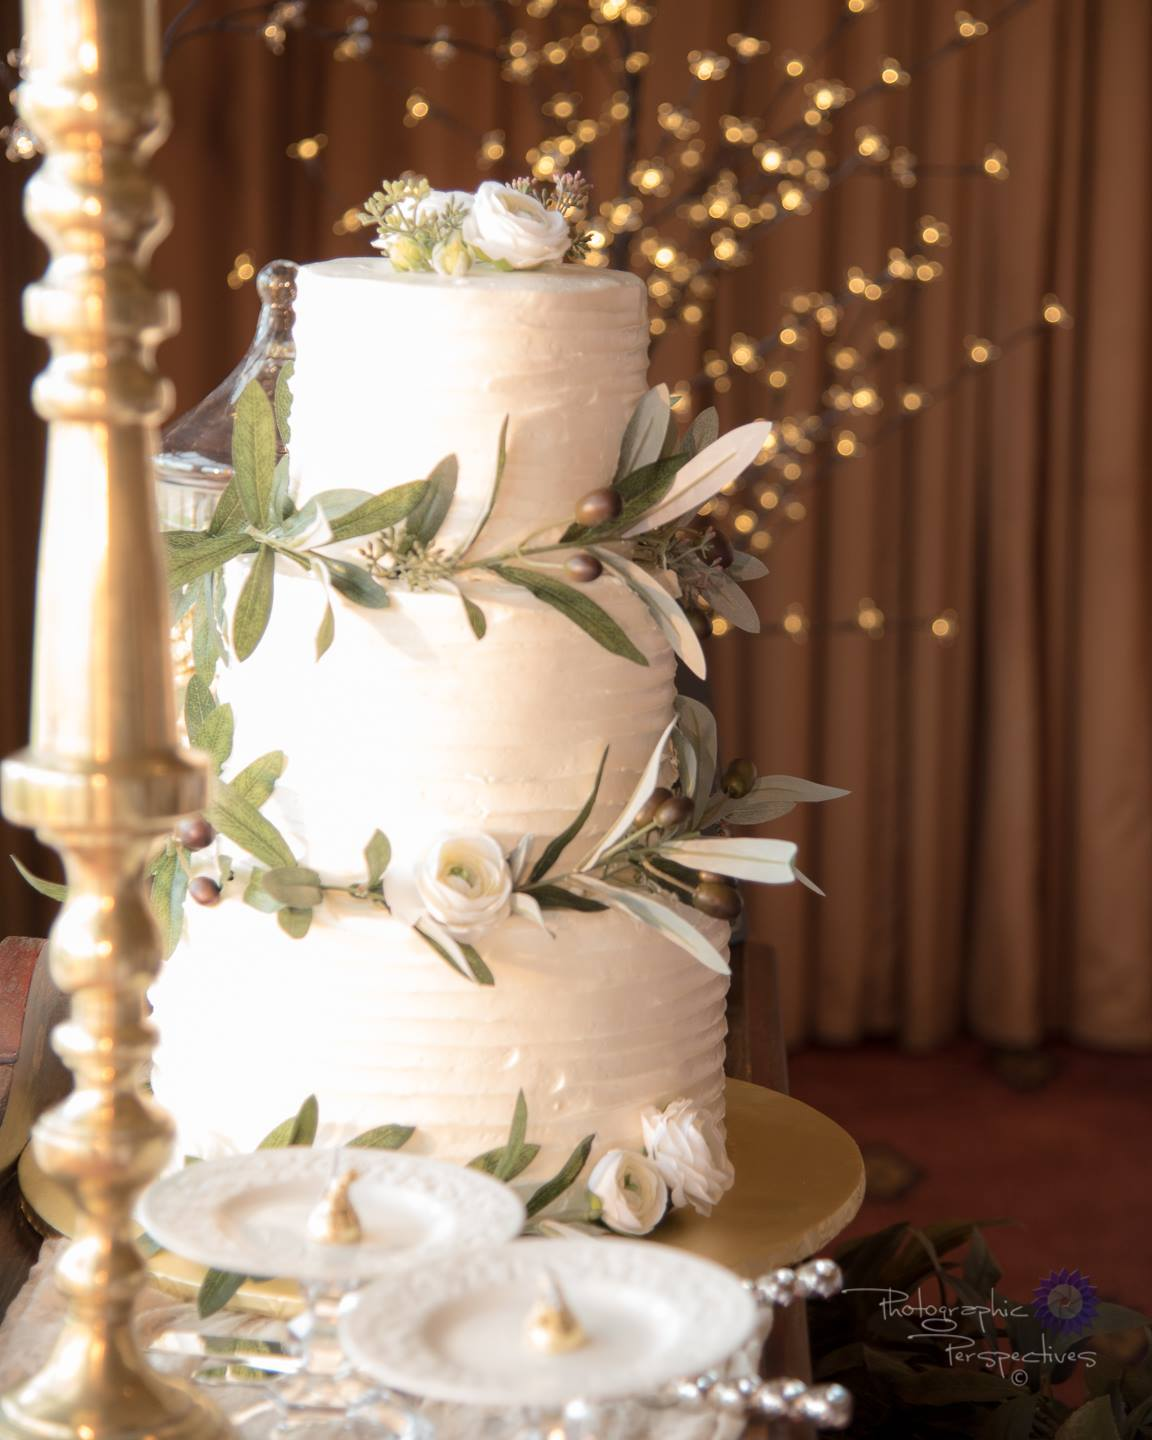 Perfect Wedding Guide planning design inspo ceremony inspiration marriage wedding vows celebration engaged planner tips tricks tablescape decor event New Mexico Albuquerque Santa Fe cake delicious natural nature sage naked cake